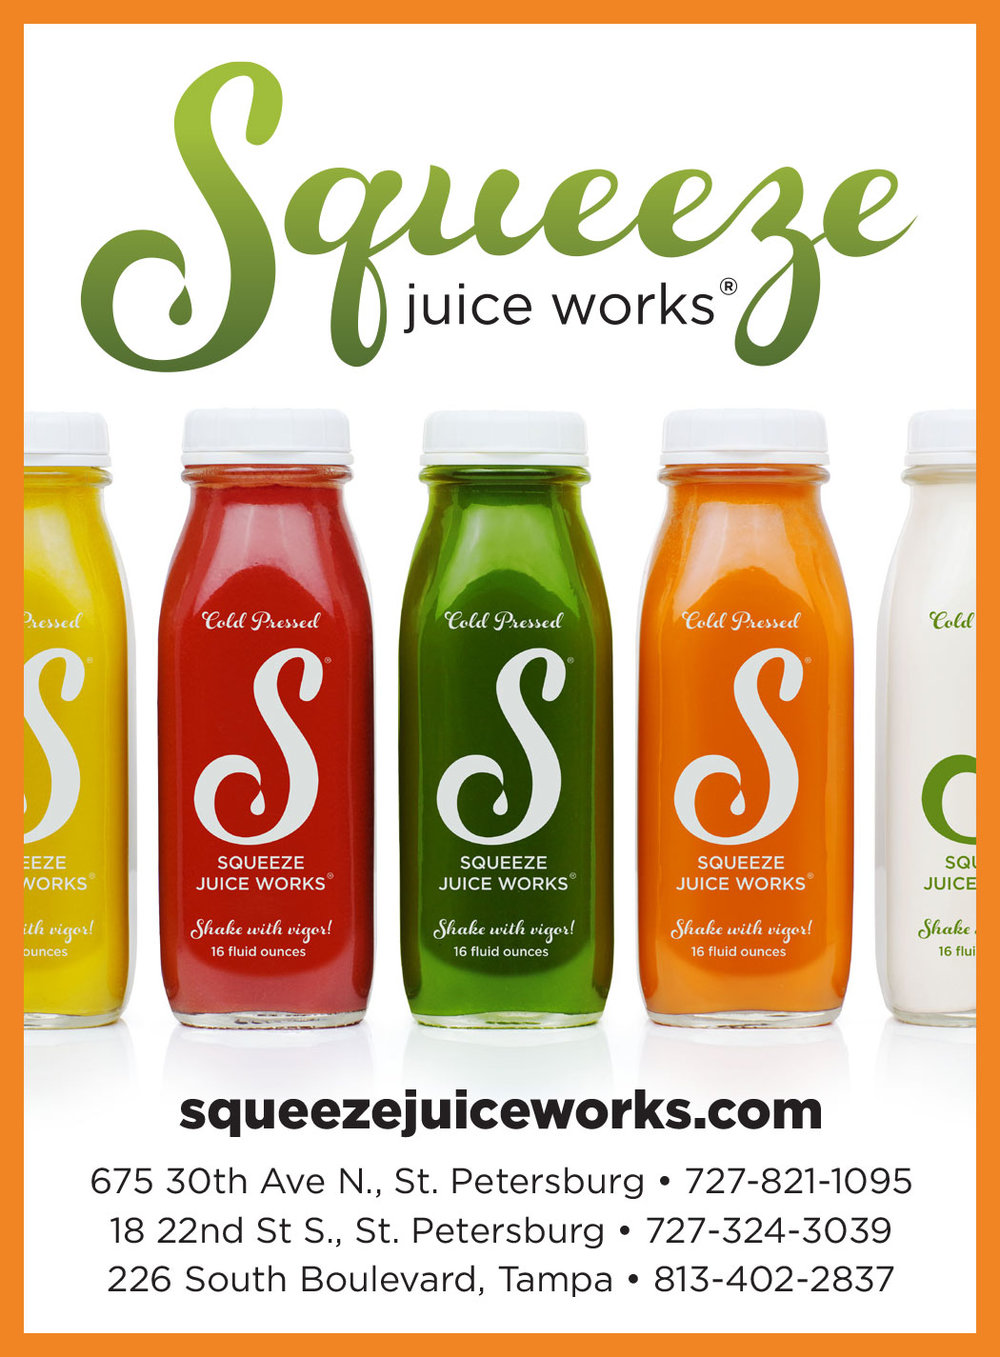 Squeeze Juice Works advertisement